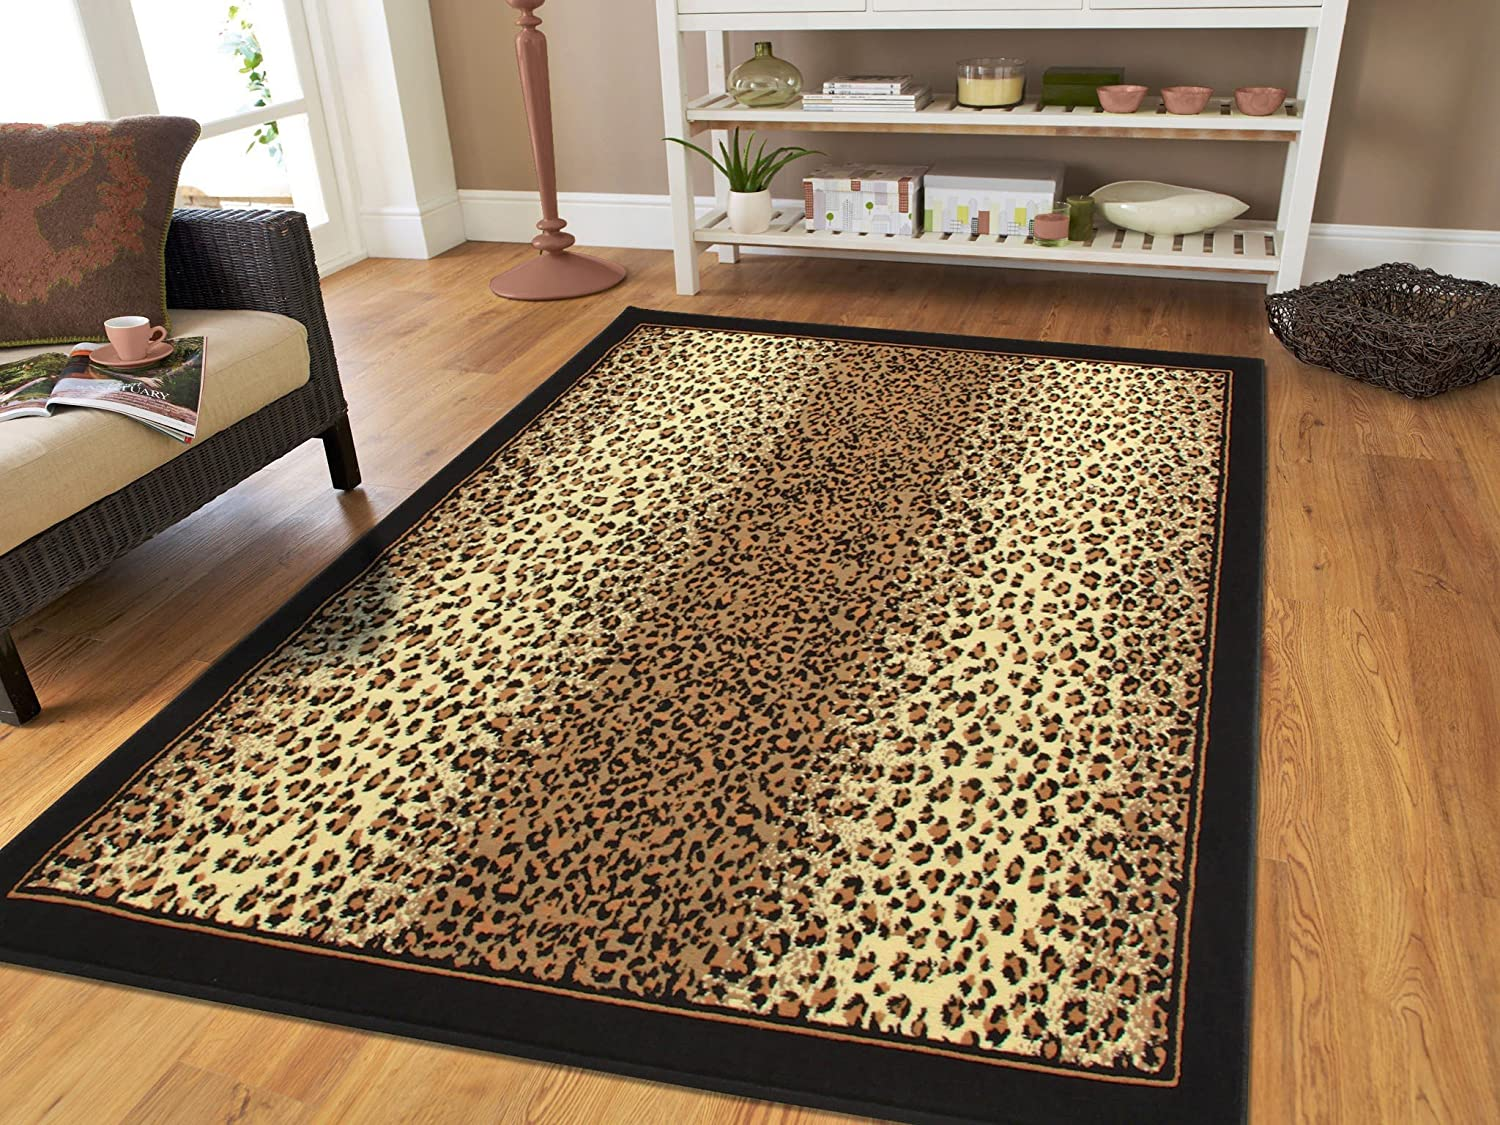 Amazon Com Brown Checkered Cheetah Rug Animal Print Rectangle Leopard Rug 5x7 Rug Brown Black Cream Rugs Leopard 5x8 Modern Rugs For Living Room Medium 5 X8 Rug Furniture Decor